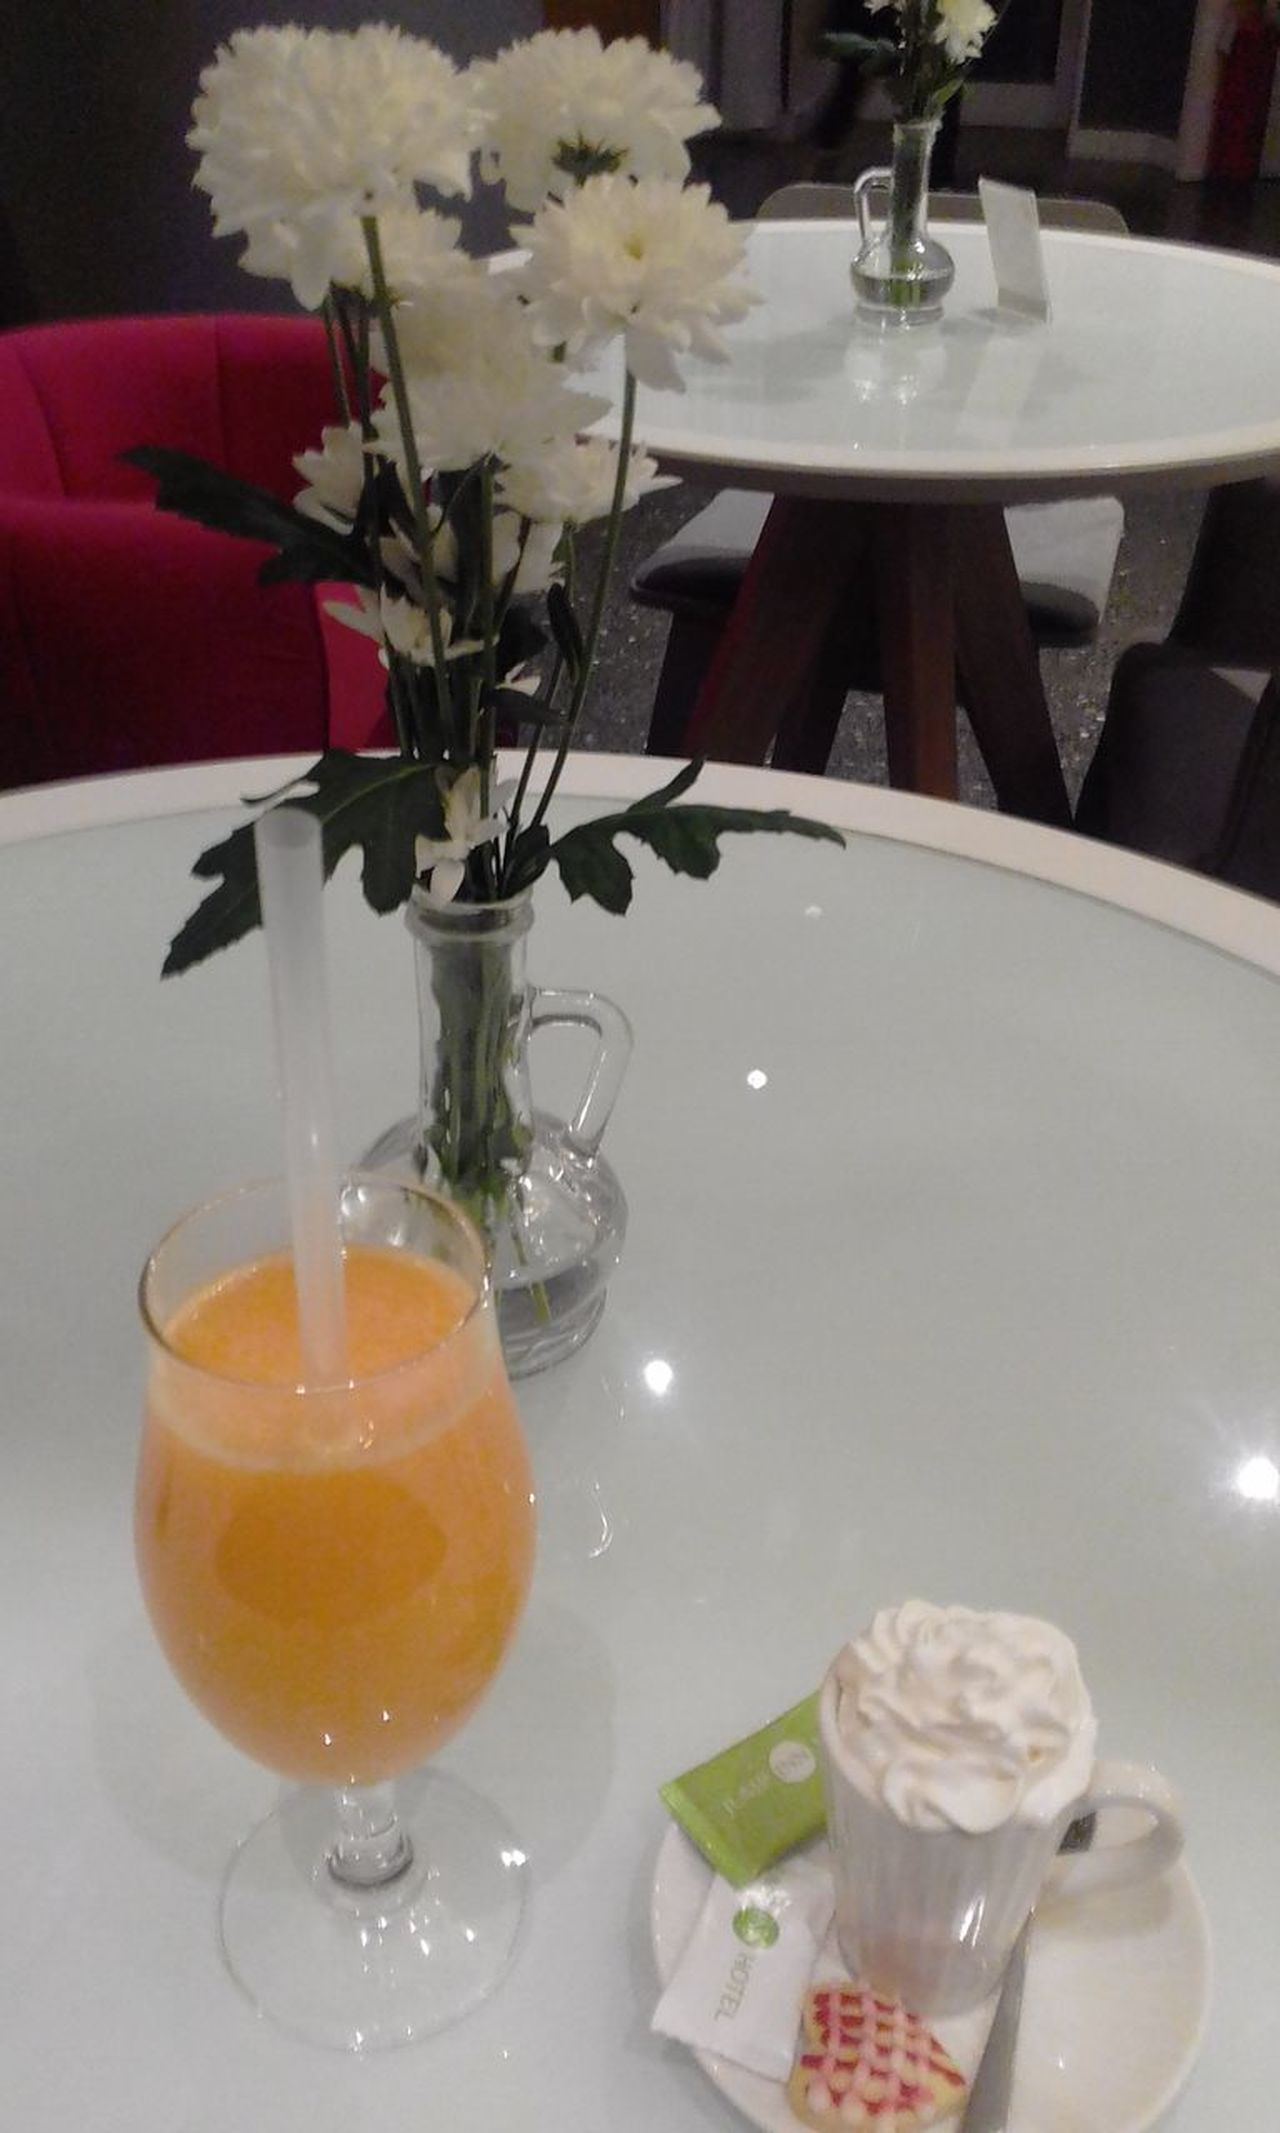 Bottle Break Time Close-up Coffee With Cream Day Drink Drinking Glass Flower Food Food And Drink Fresh Orange Juice Freshness Healthy Eating Indoors  Moment Of Pleasure No People Orange Juice  Plate Pleasure Ready-to-eat Refreshment Serving Size Sweet Moments Table Vase